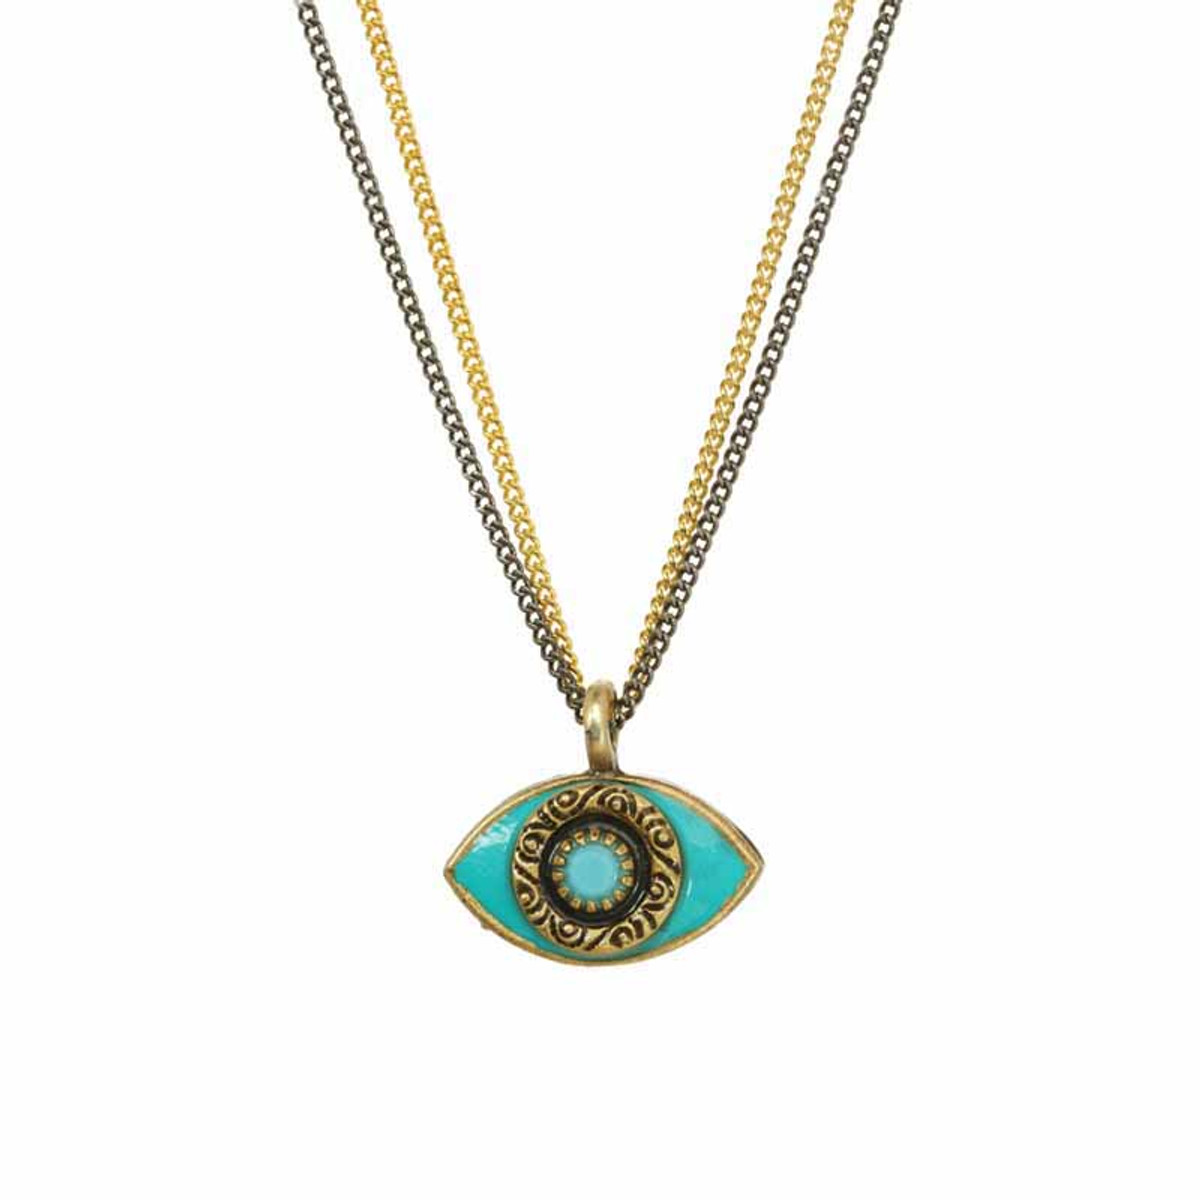 Michal Golan Small Turquoise Evil Eye Necklace